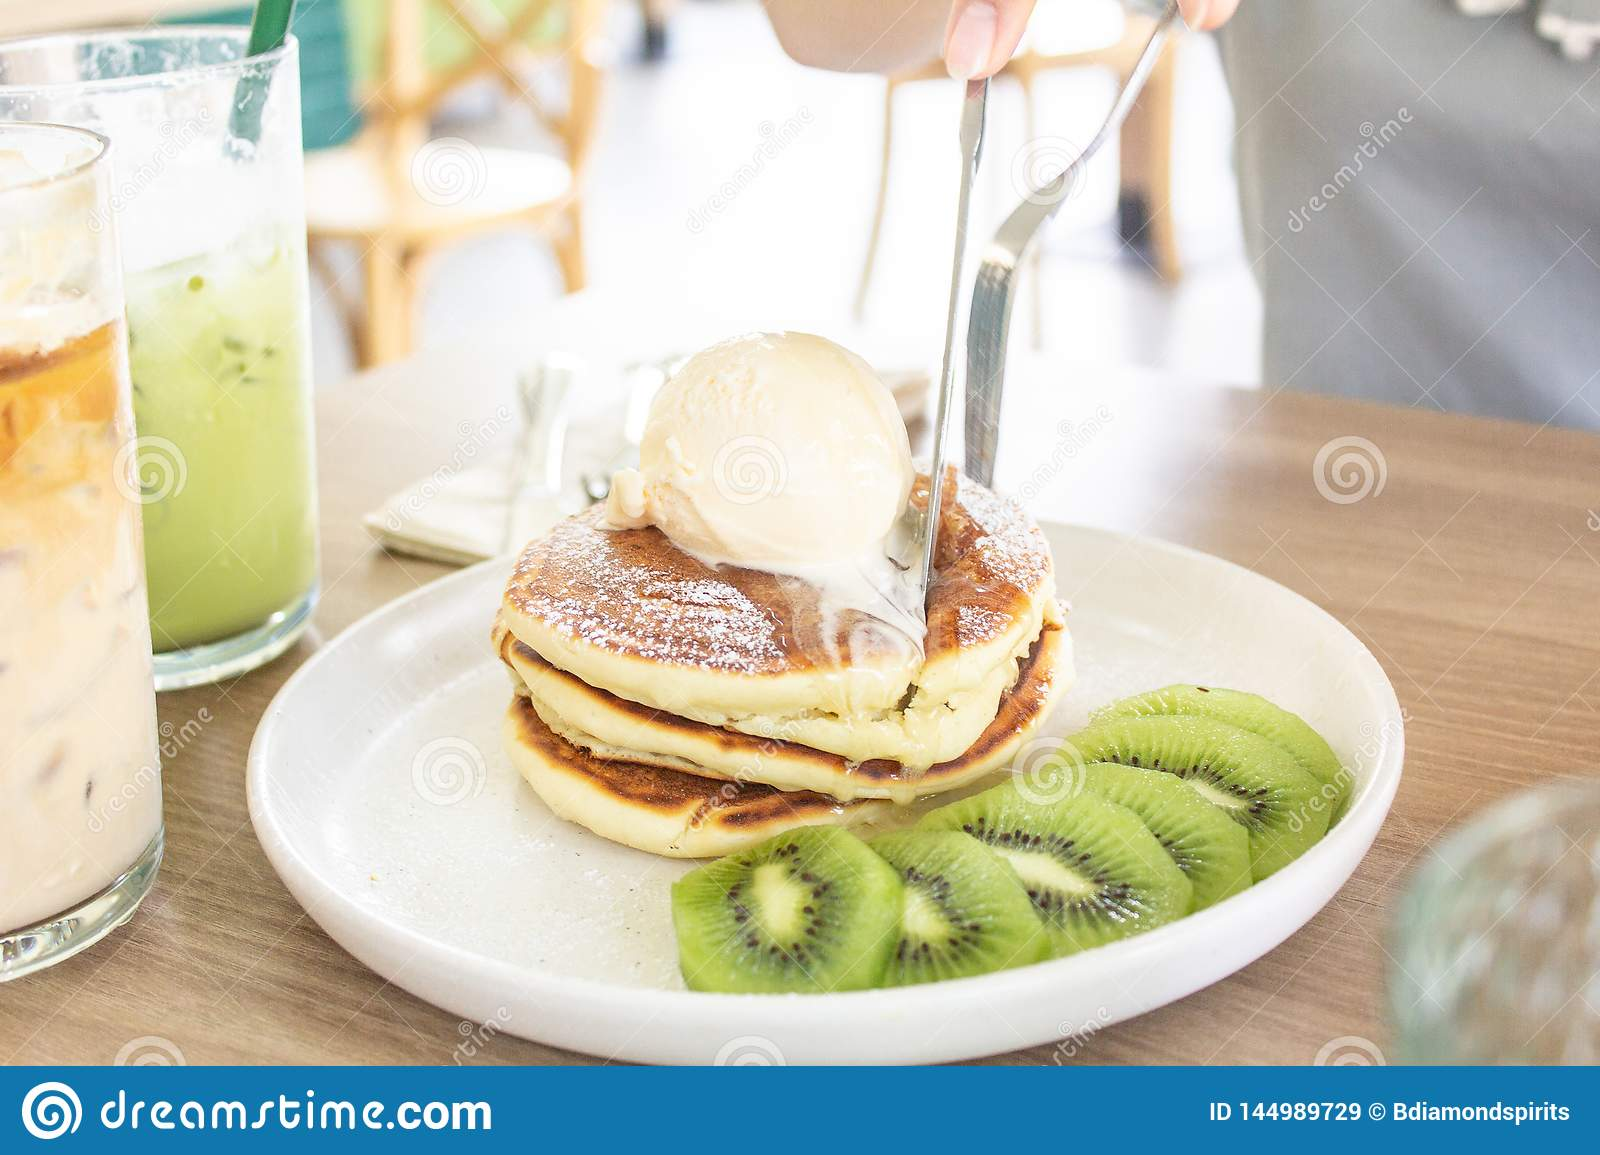 Ice cream Kiwi Pancake